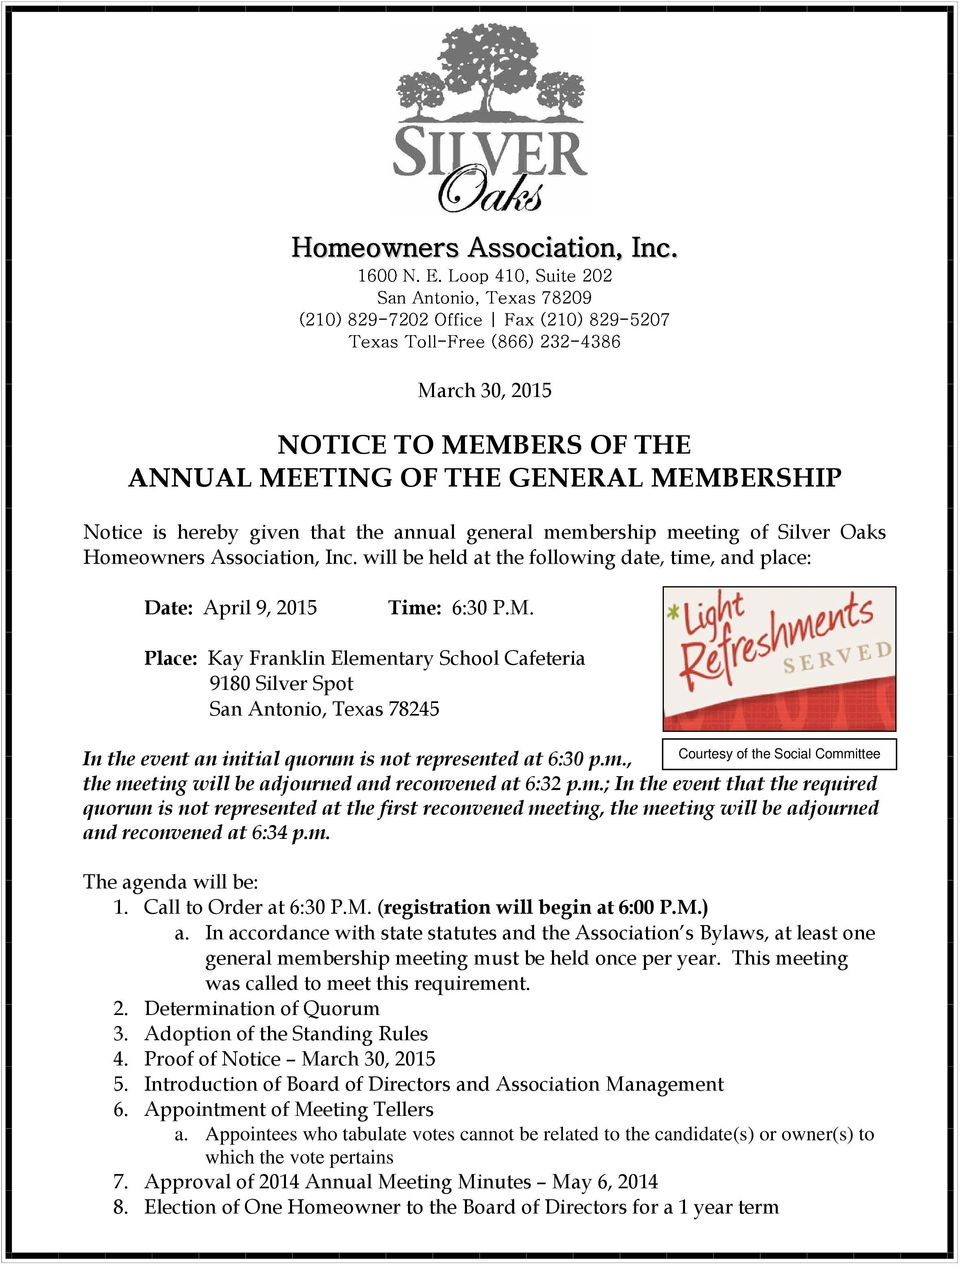 Homeowners Association, Inc. will be held at the following date, time, and place: Date: April 9, 2015 Time: 6:30 P.M.